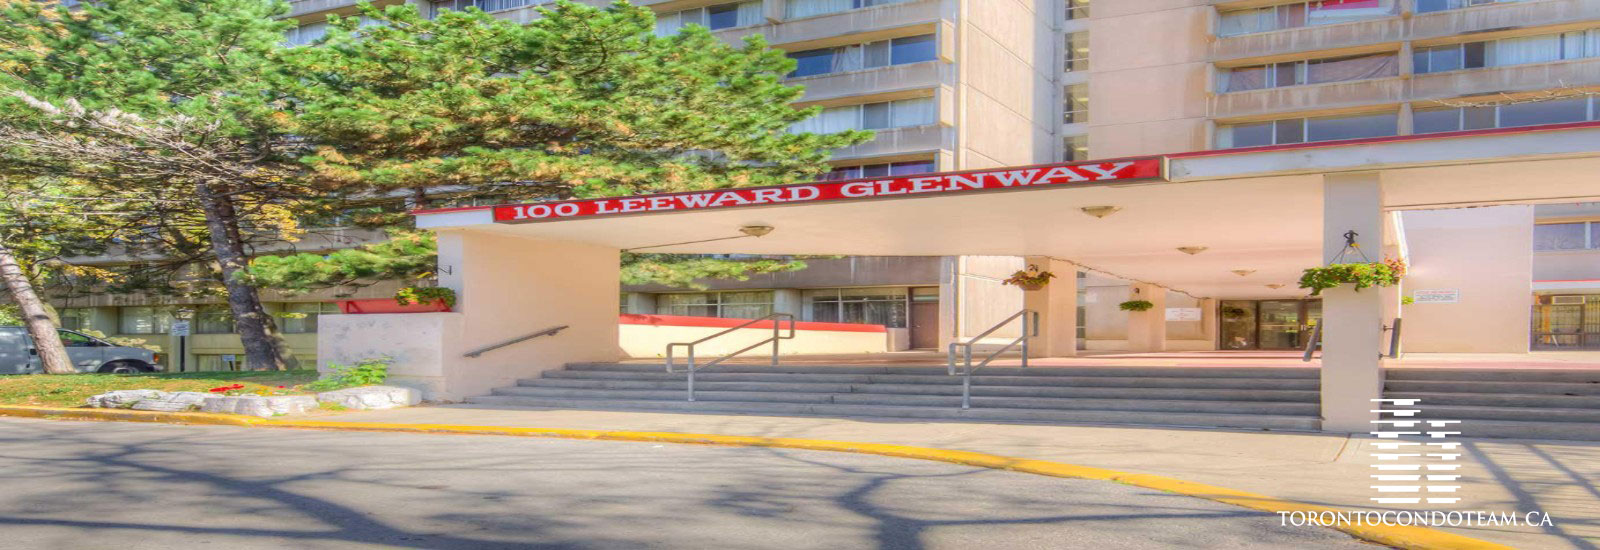 100 Leeward Glenward Condos For Sale